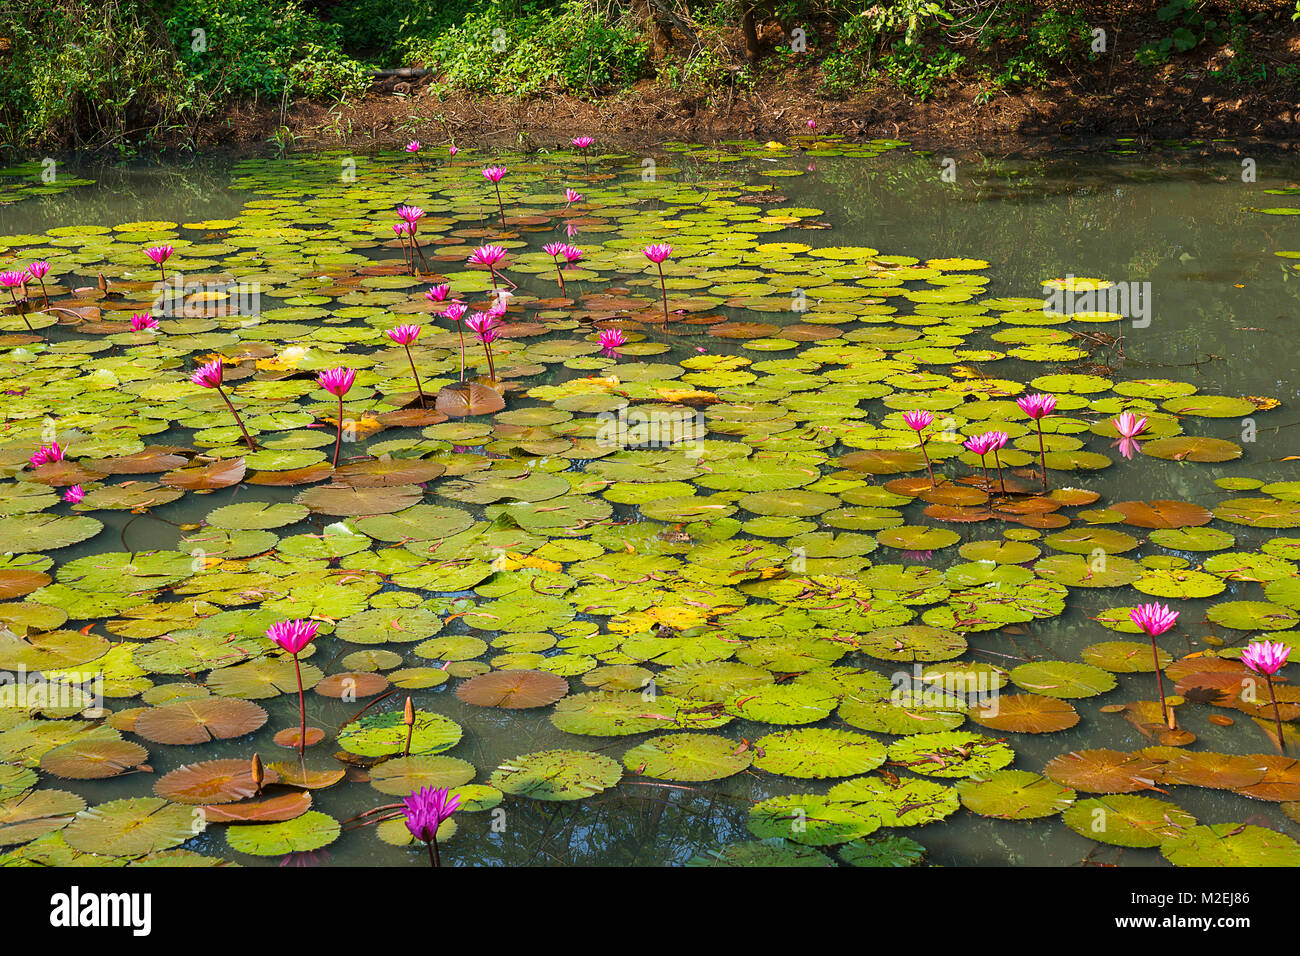 Pond full of pink lily lotus pink water lily or pink lotus kumud pond full of pink lily lotus pink water lily or pink lotus kumud in sanskrit native to india and south east asia toothed floating leaves elliptic mightylinksfo